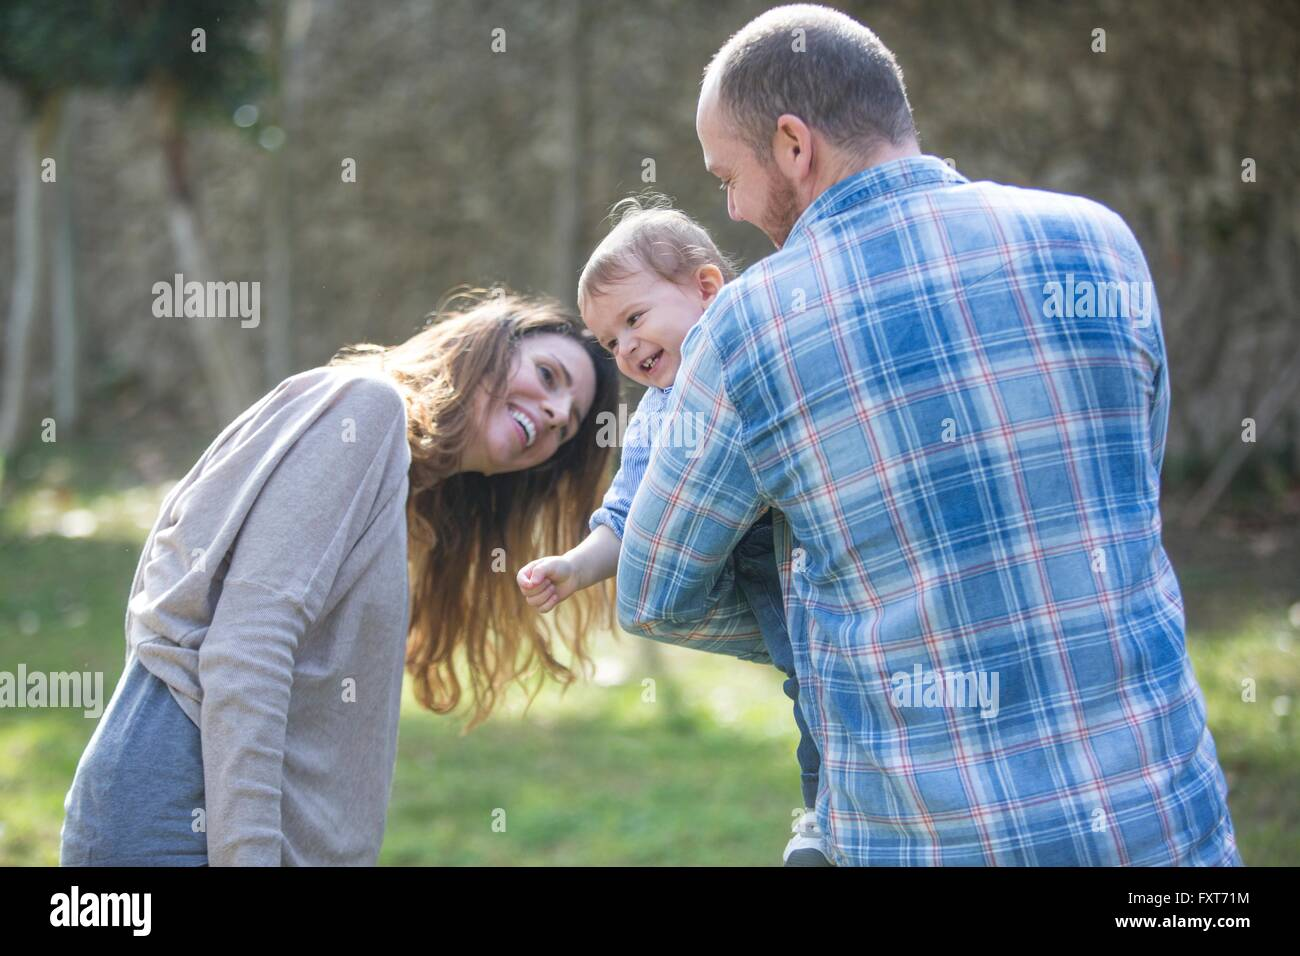 Parents holding smiling baby boy, playing - Stock Image